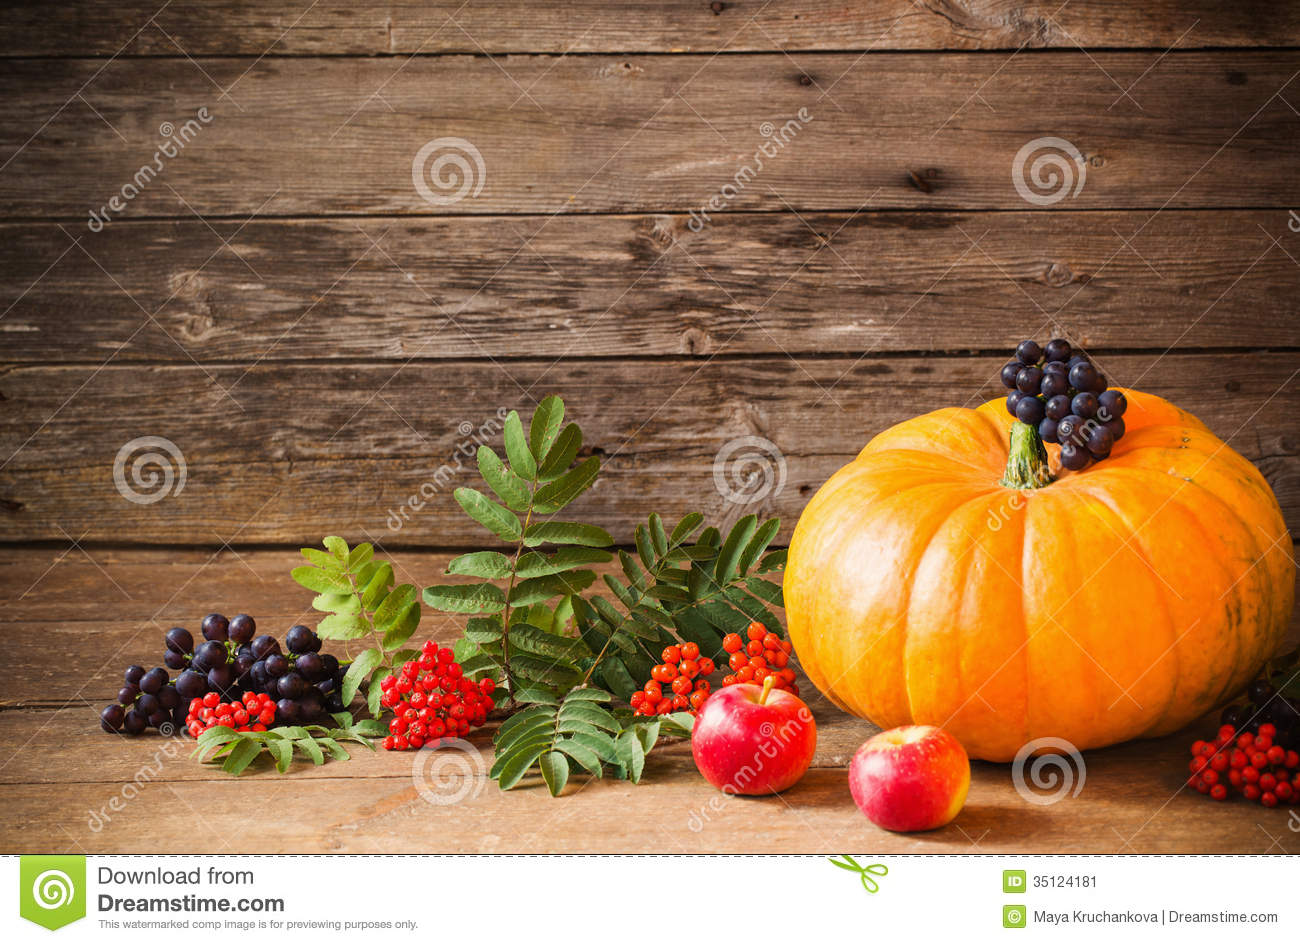 Pumpkin with berrie on wooden background